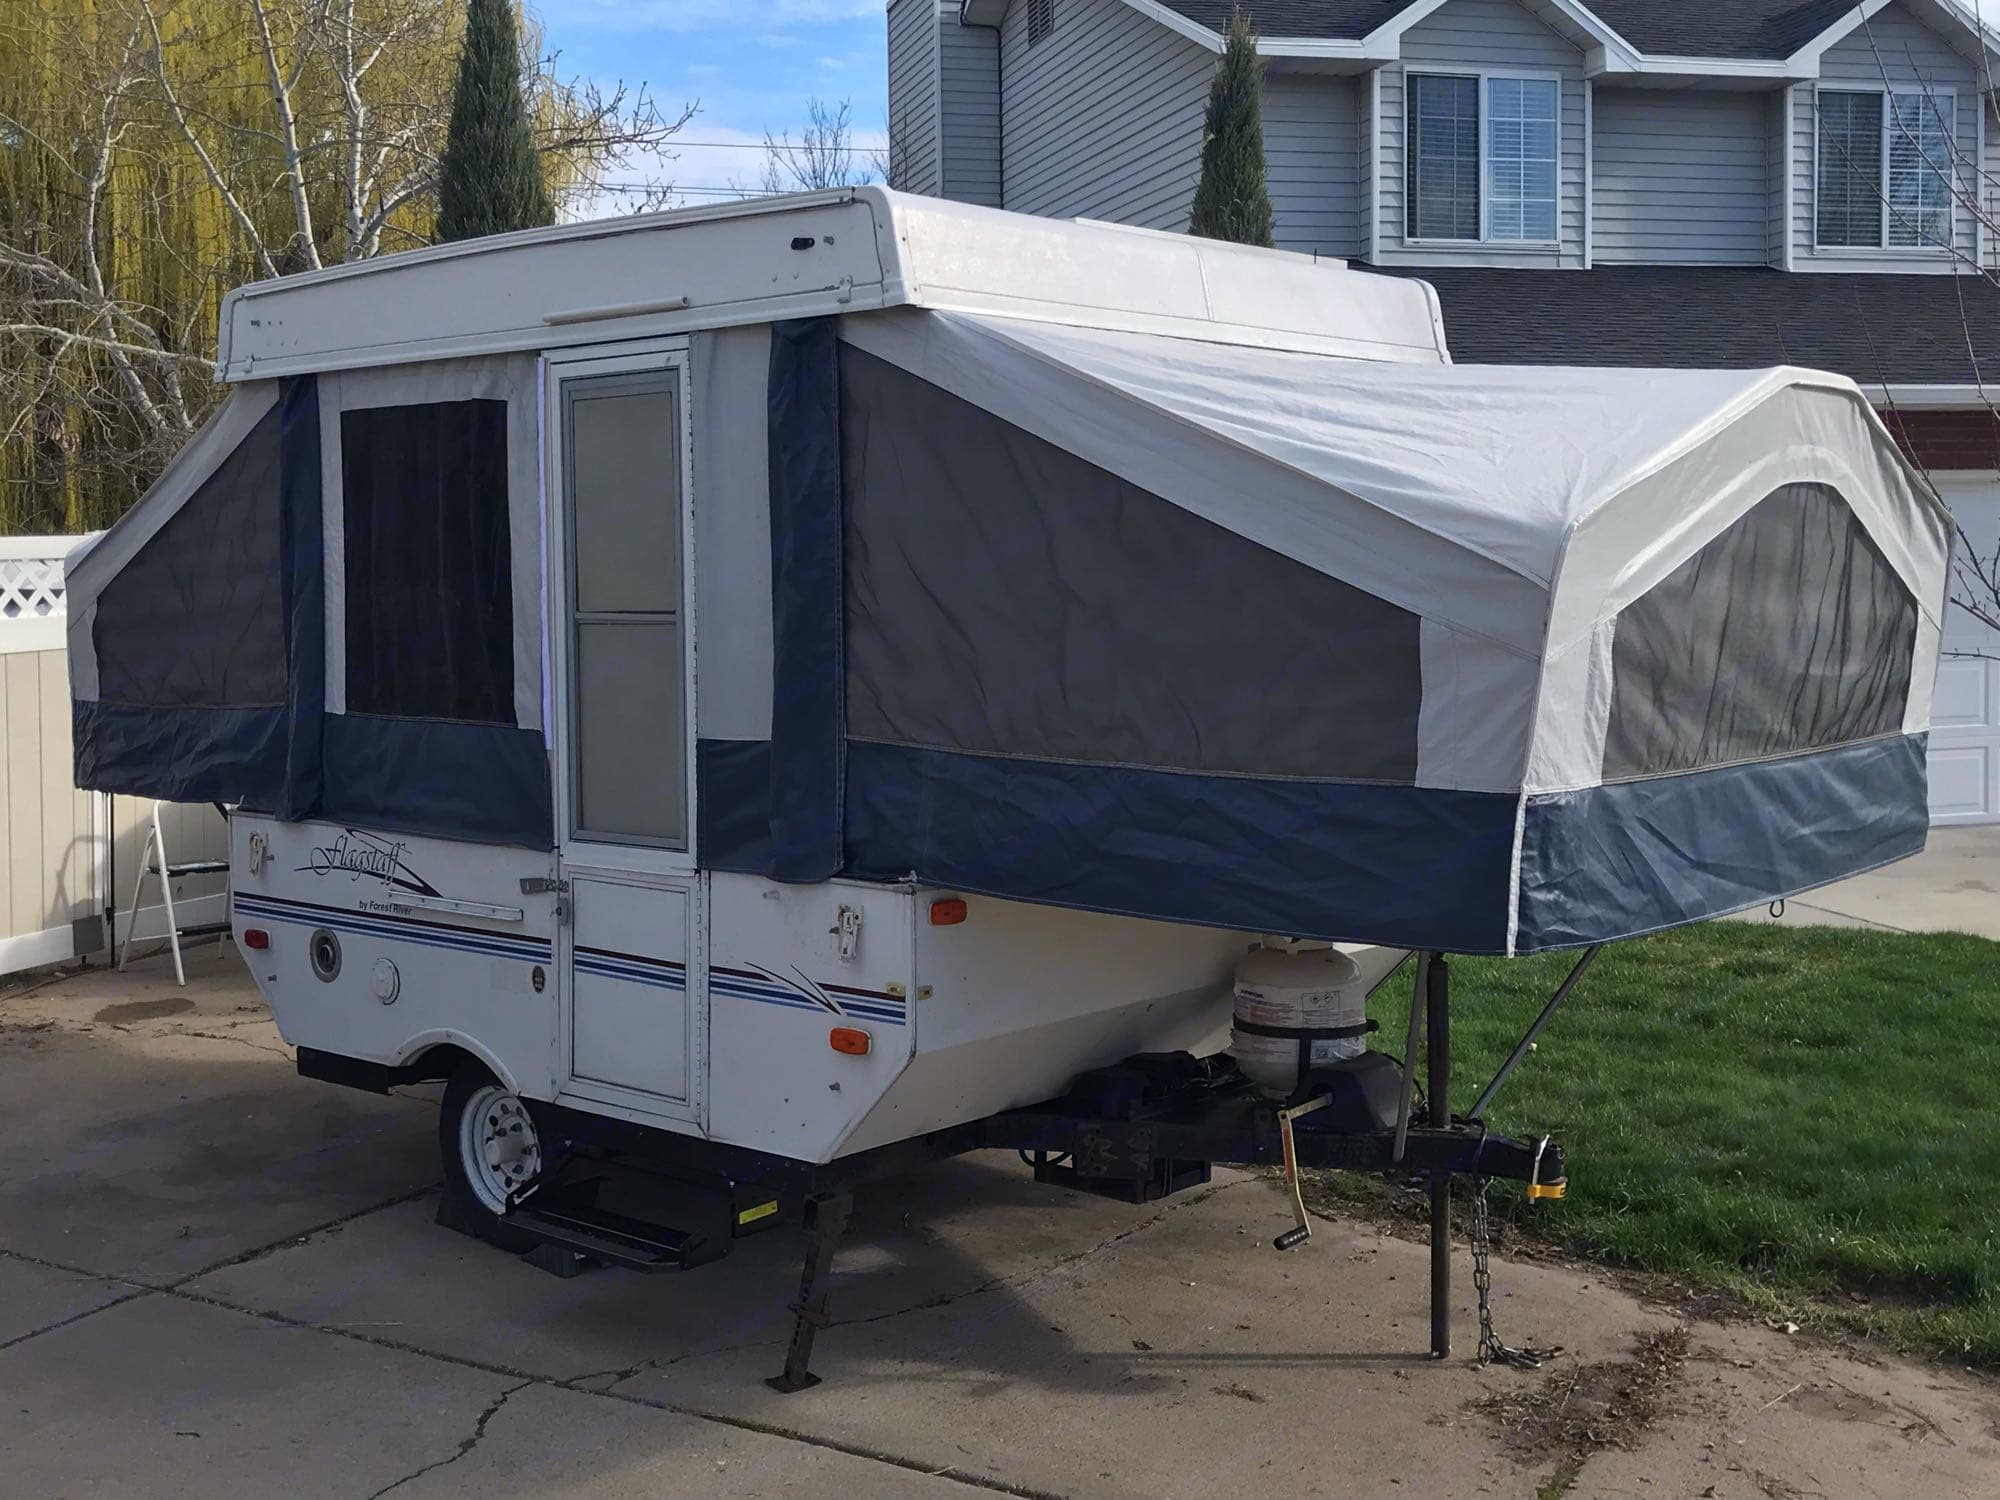 Compact with three beds, 4 to 5 people . Forest River Flagstaff 2002